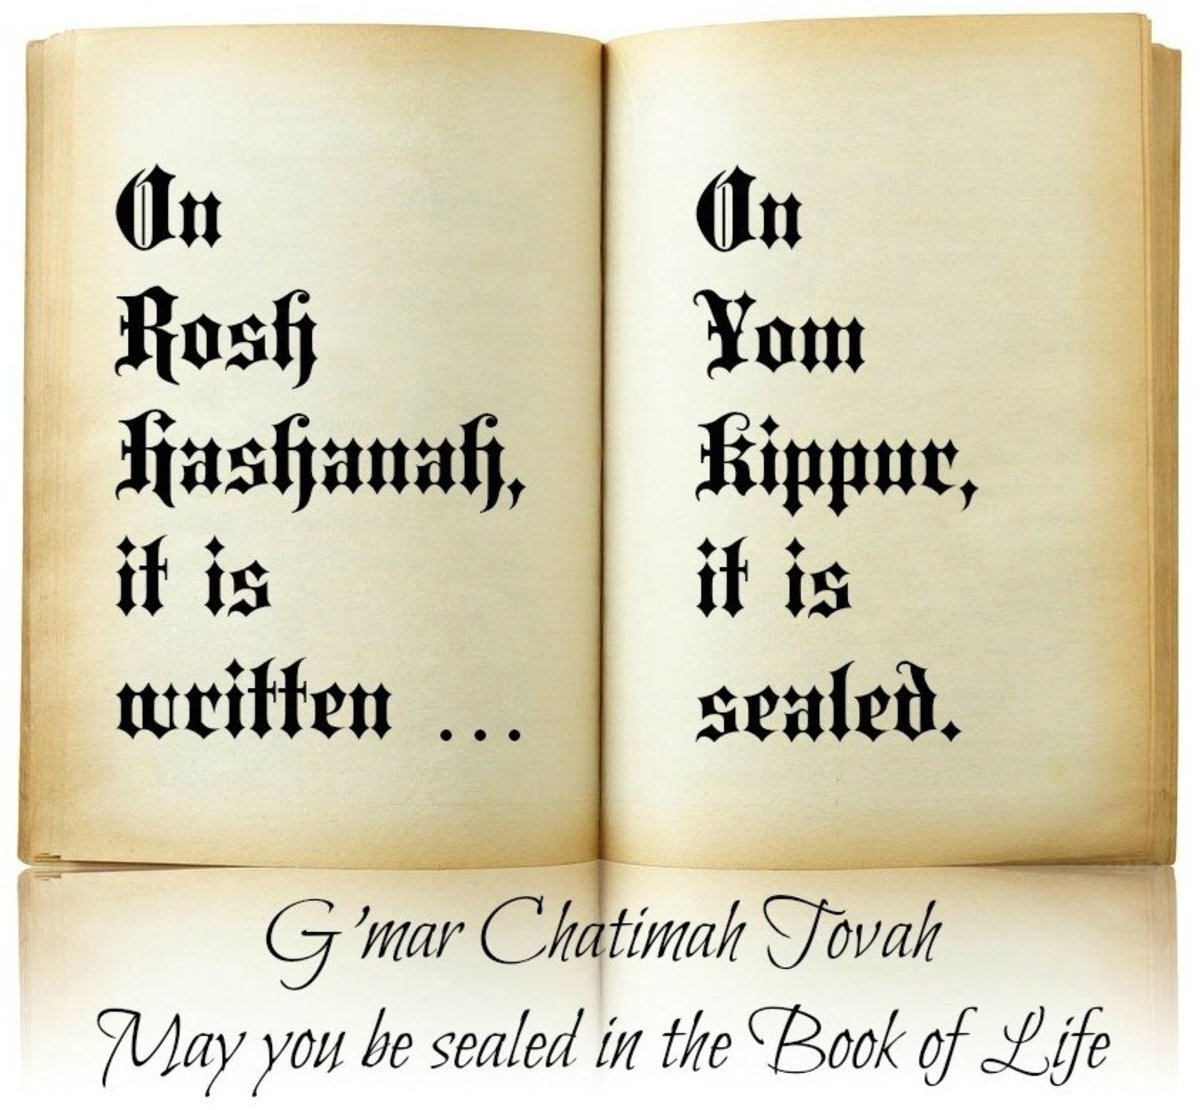 from the Jewish High Holiday Prayer Book